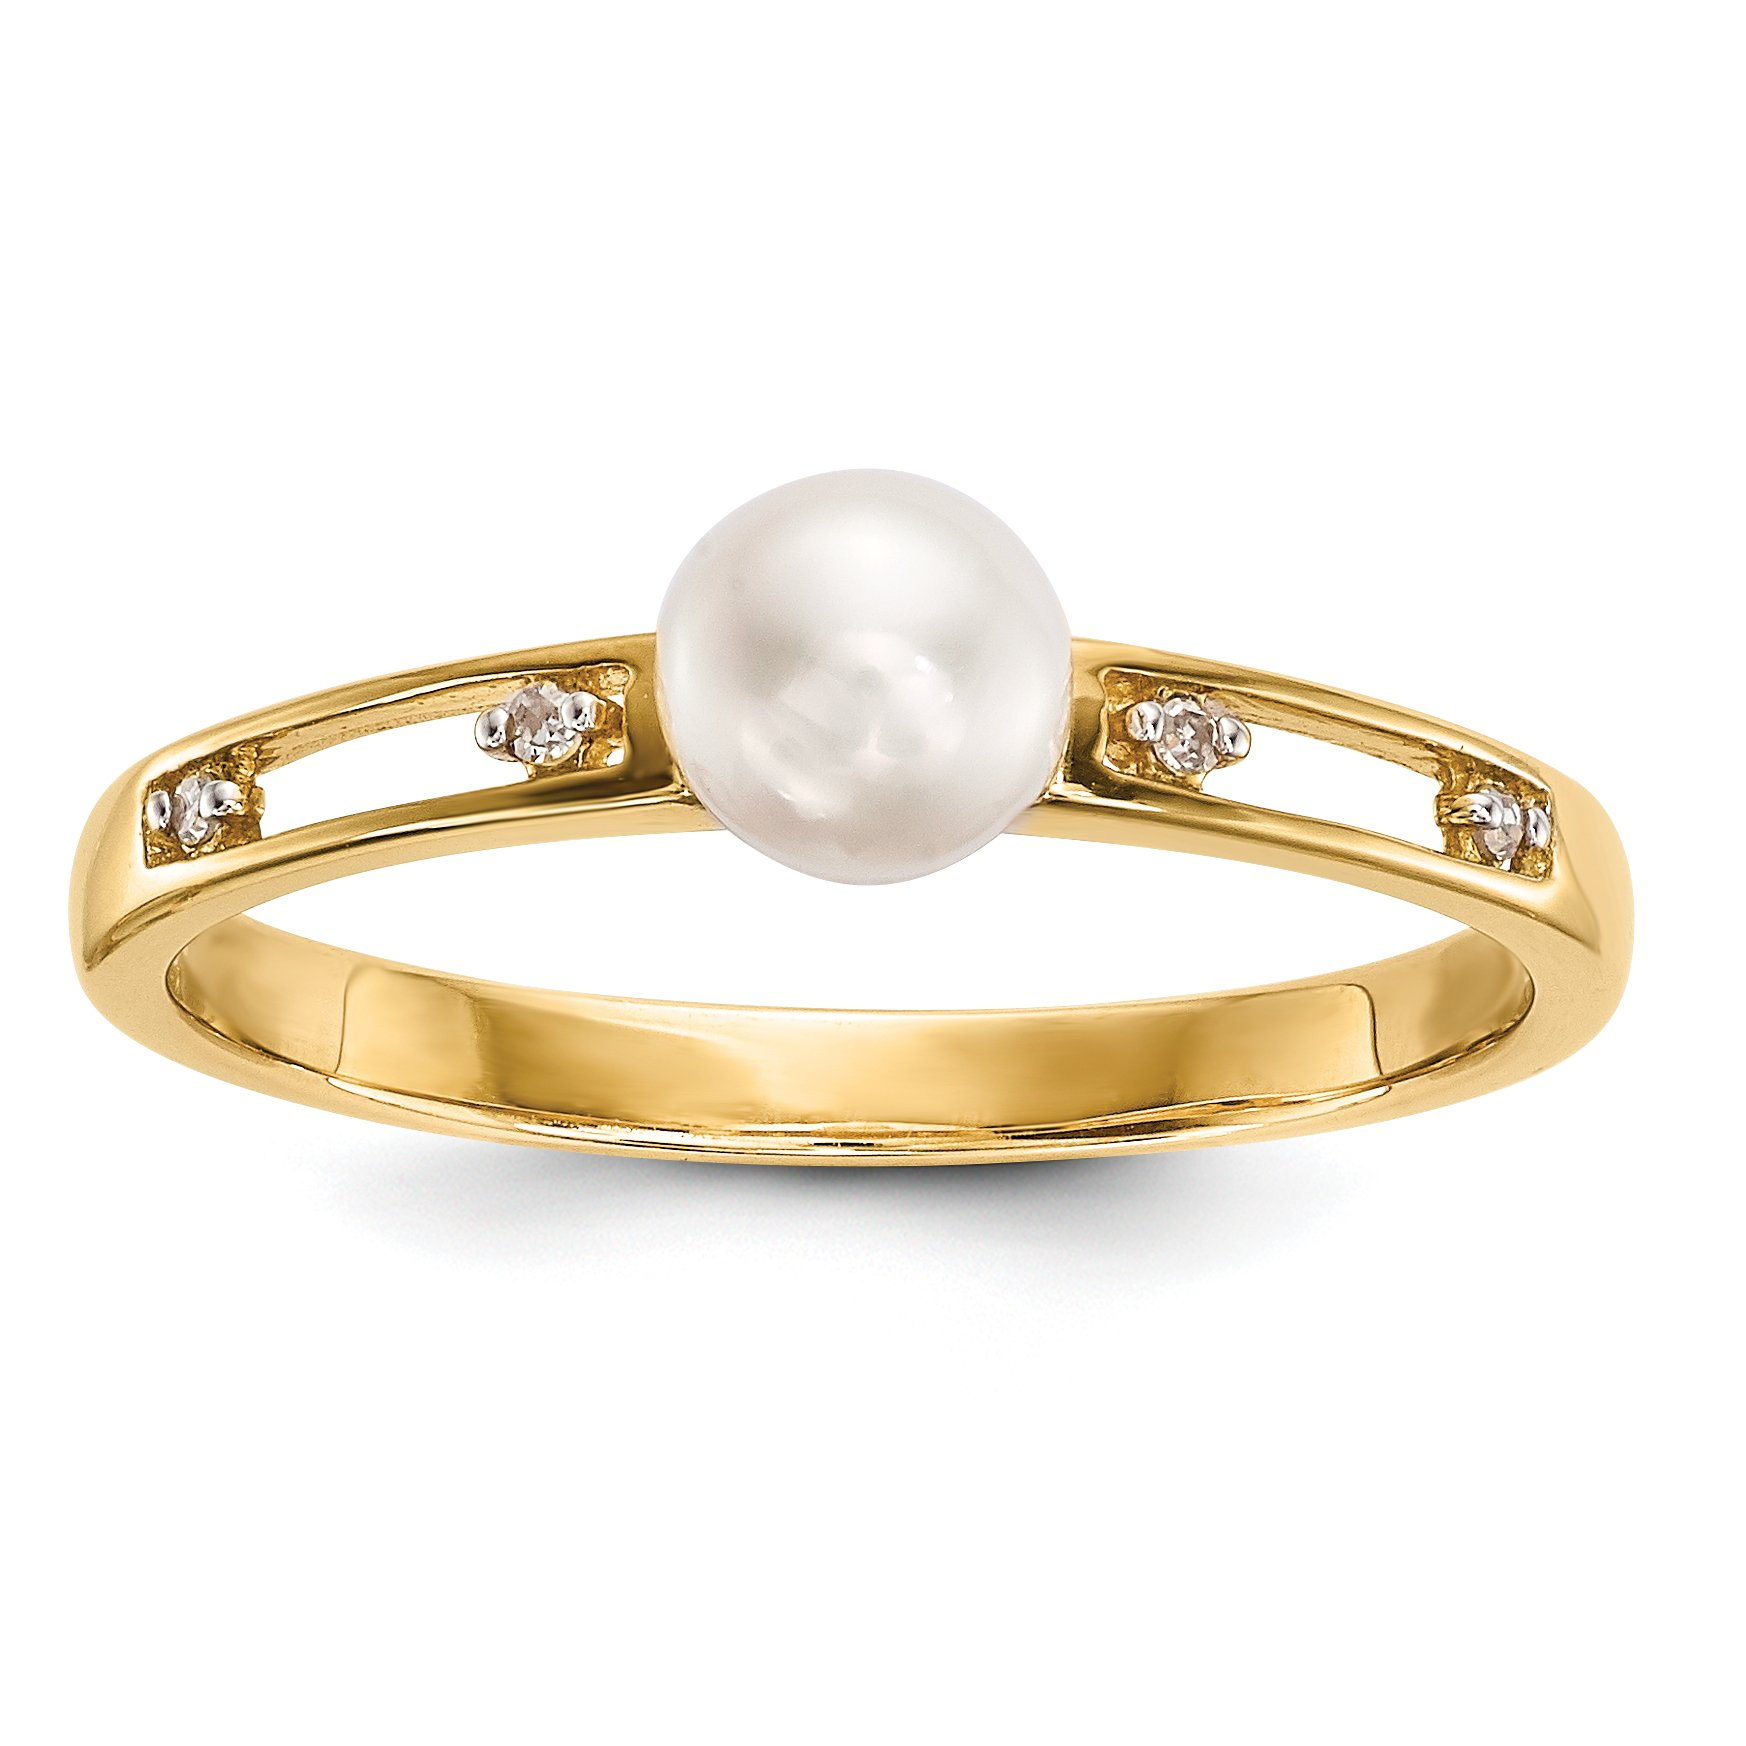 ICE CARATS 14k Yellow Gold Freshwater Cultured Pearl Diamond Band Ring Size 7.00 Fine Jewelry Gift Set For Women Heart